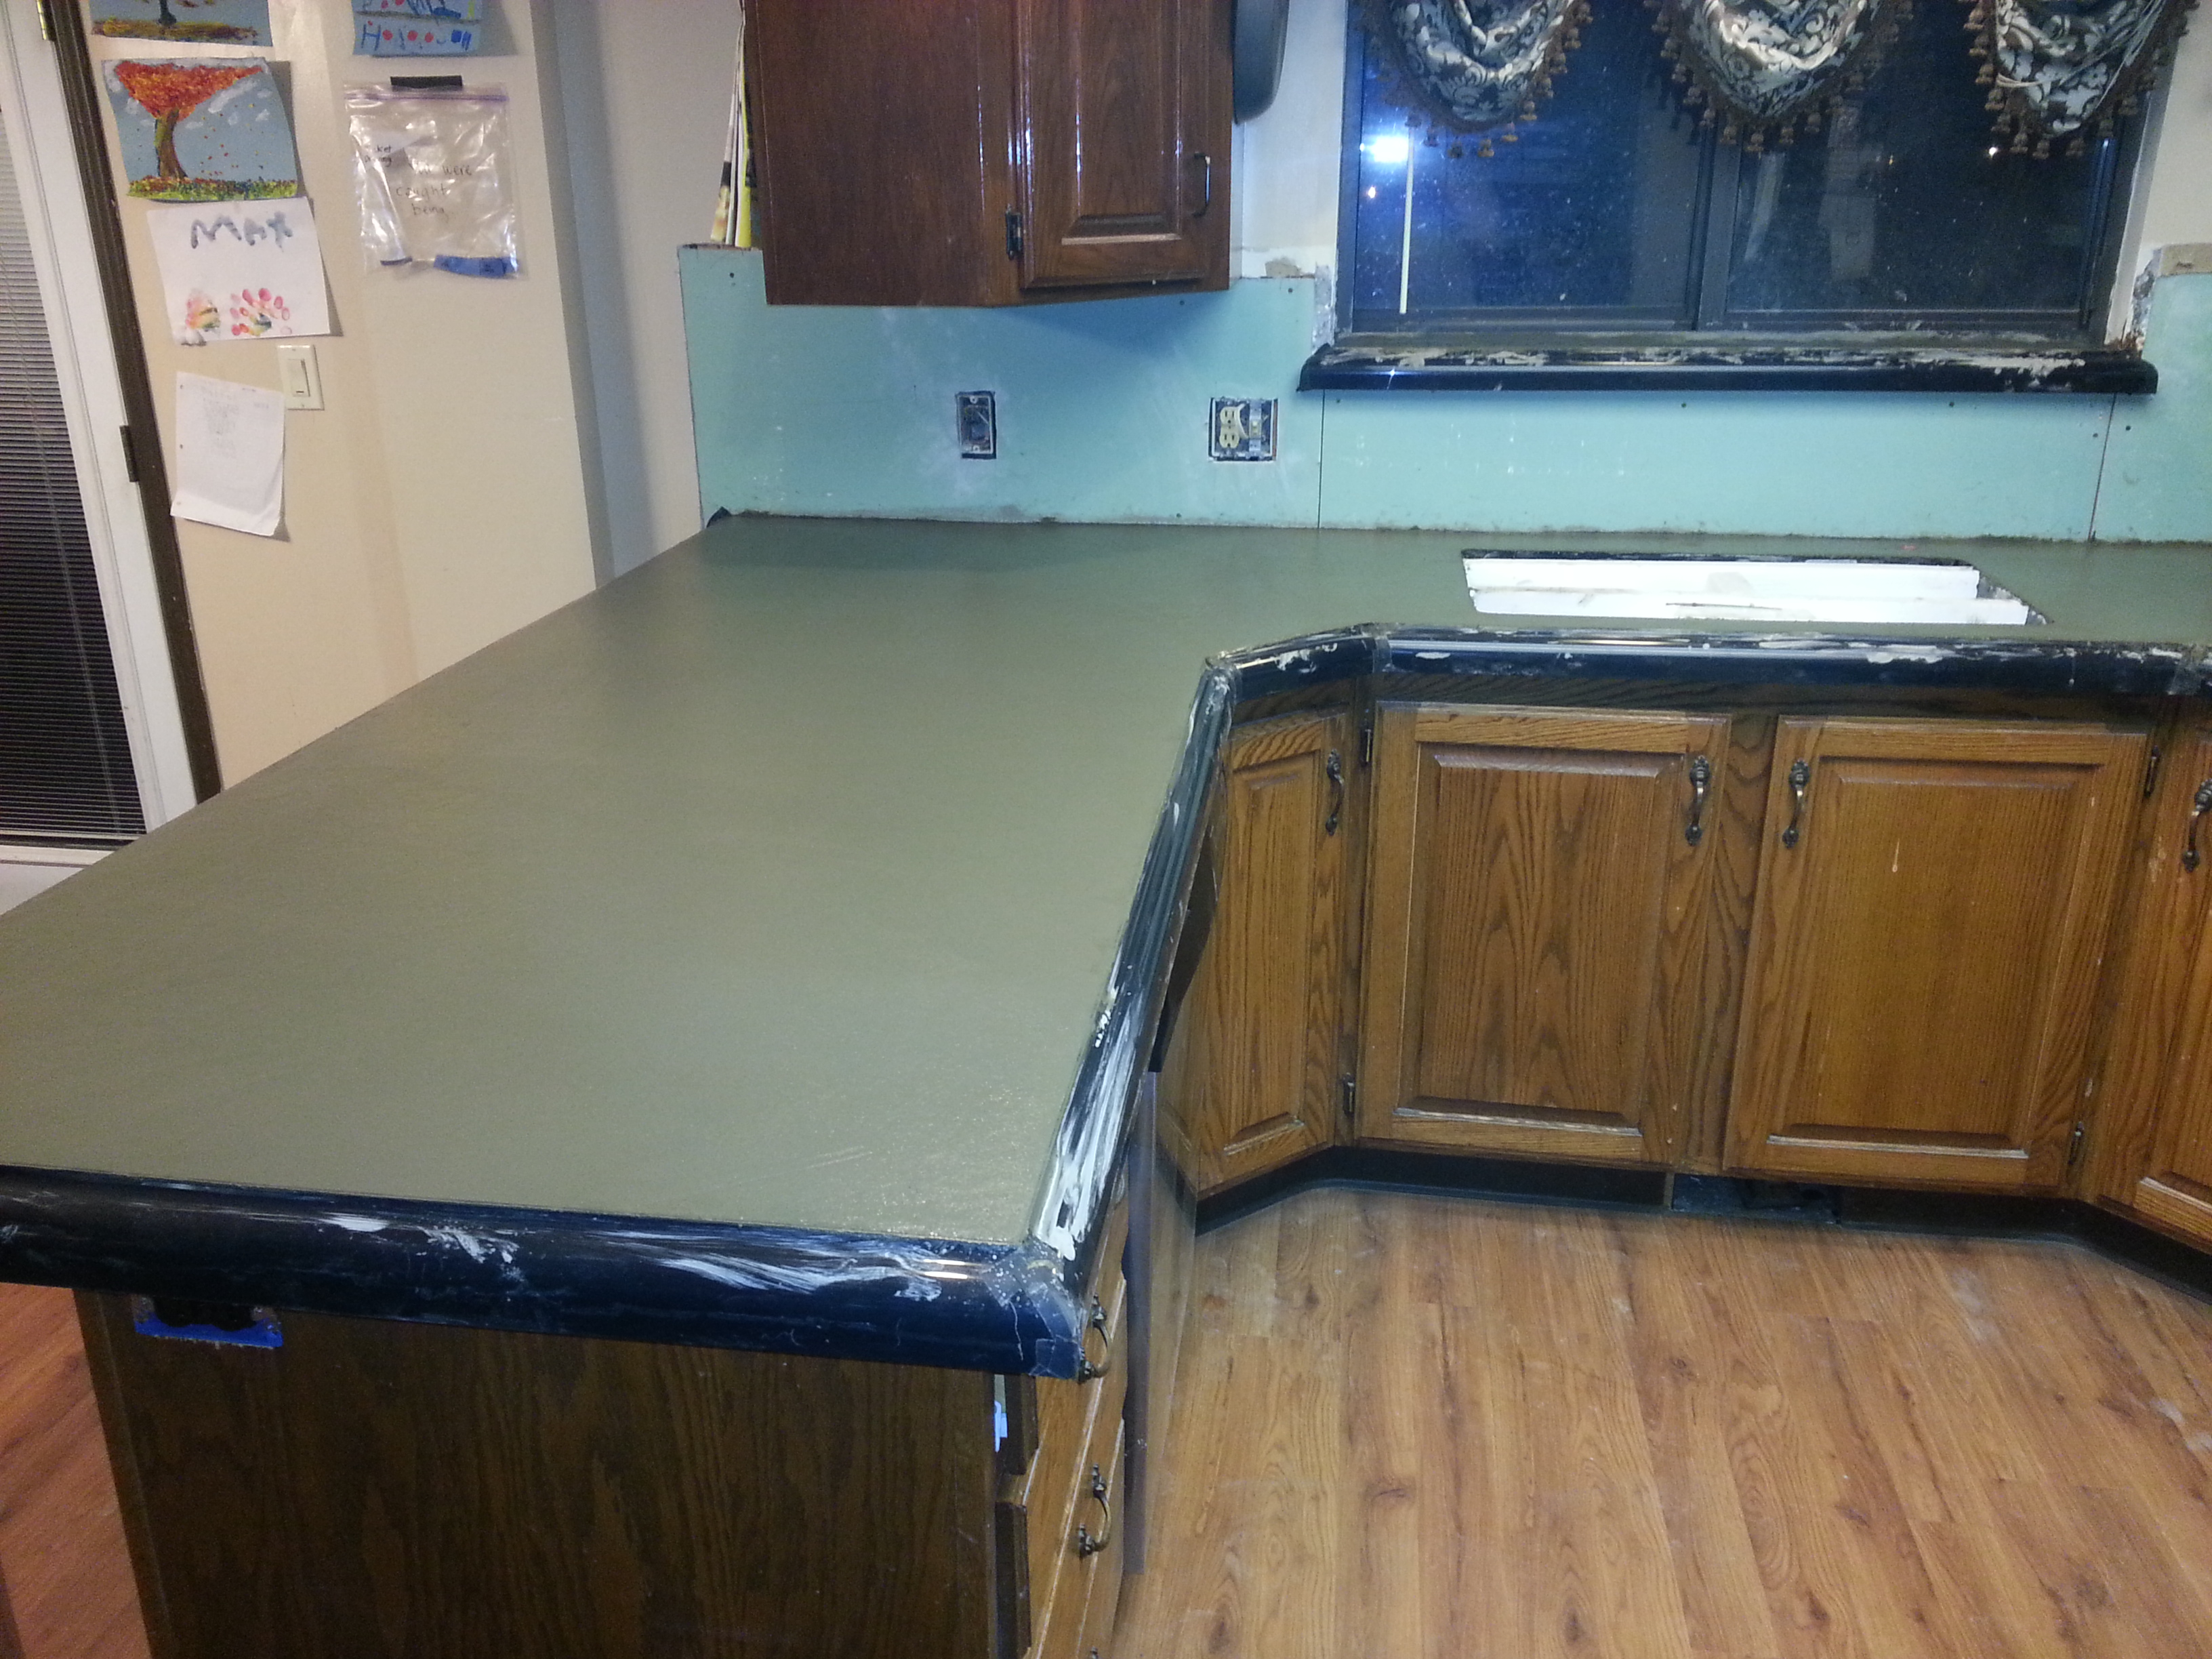 About The Concrete Countertops Keto Chow